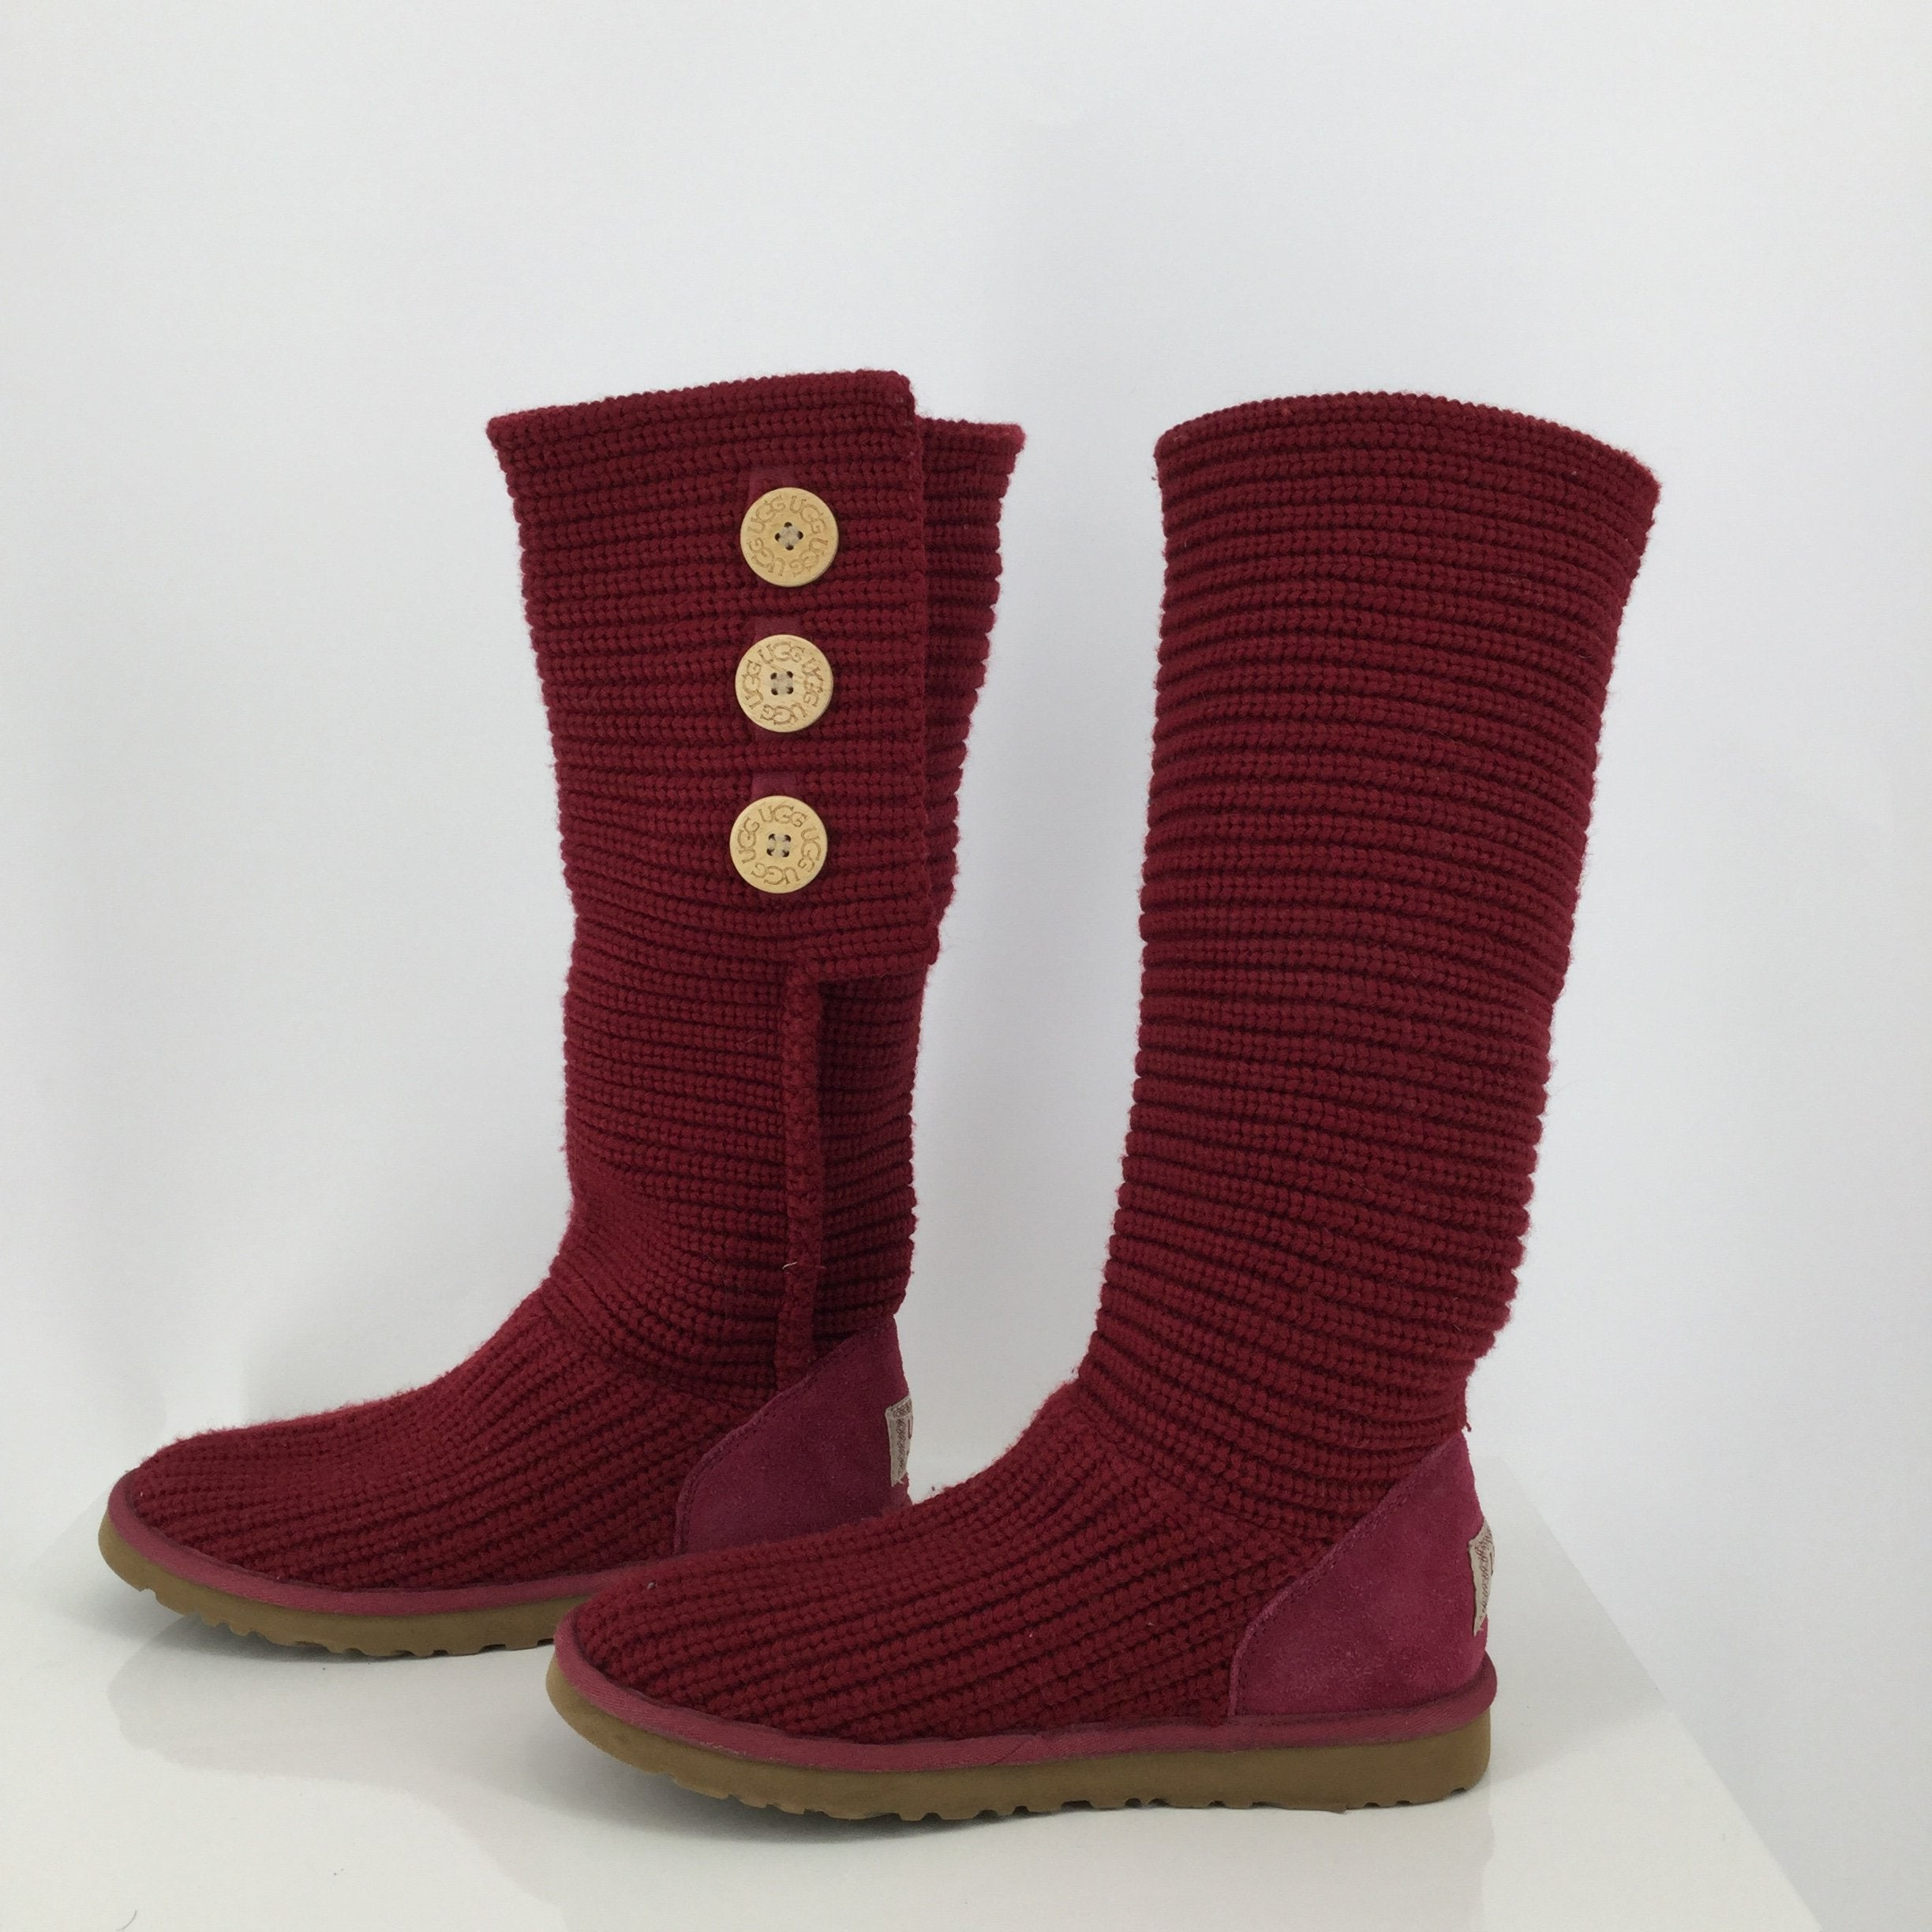 Ugg Red Slipper Boots Size:8 - <P>THESE SIZE 8 KNITTED UGG BOOTS WILL KEEP YOU WARM AND LOOKING CUTE ALL WINTER LONG! THEY ARE GENTLY USED WITH SOME MINOR WEAR (SEE PHOTOS).</P>